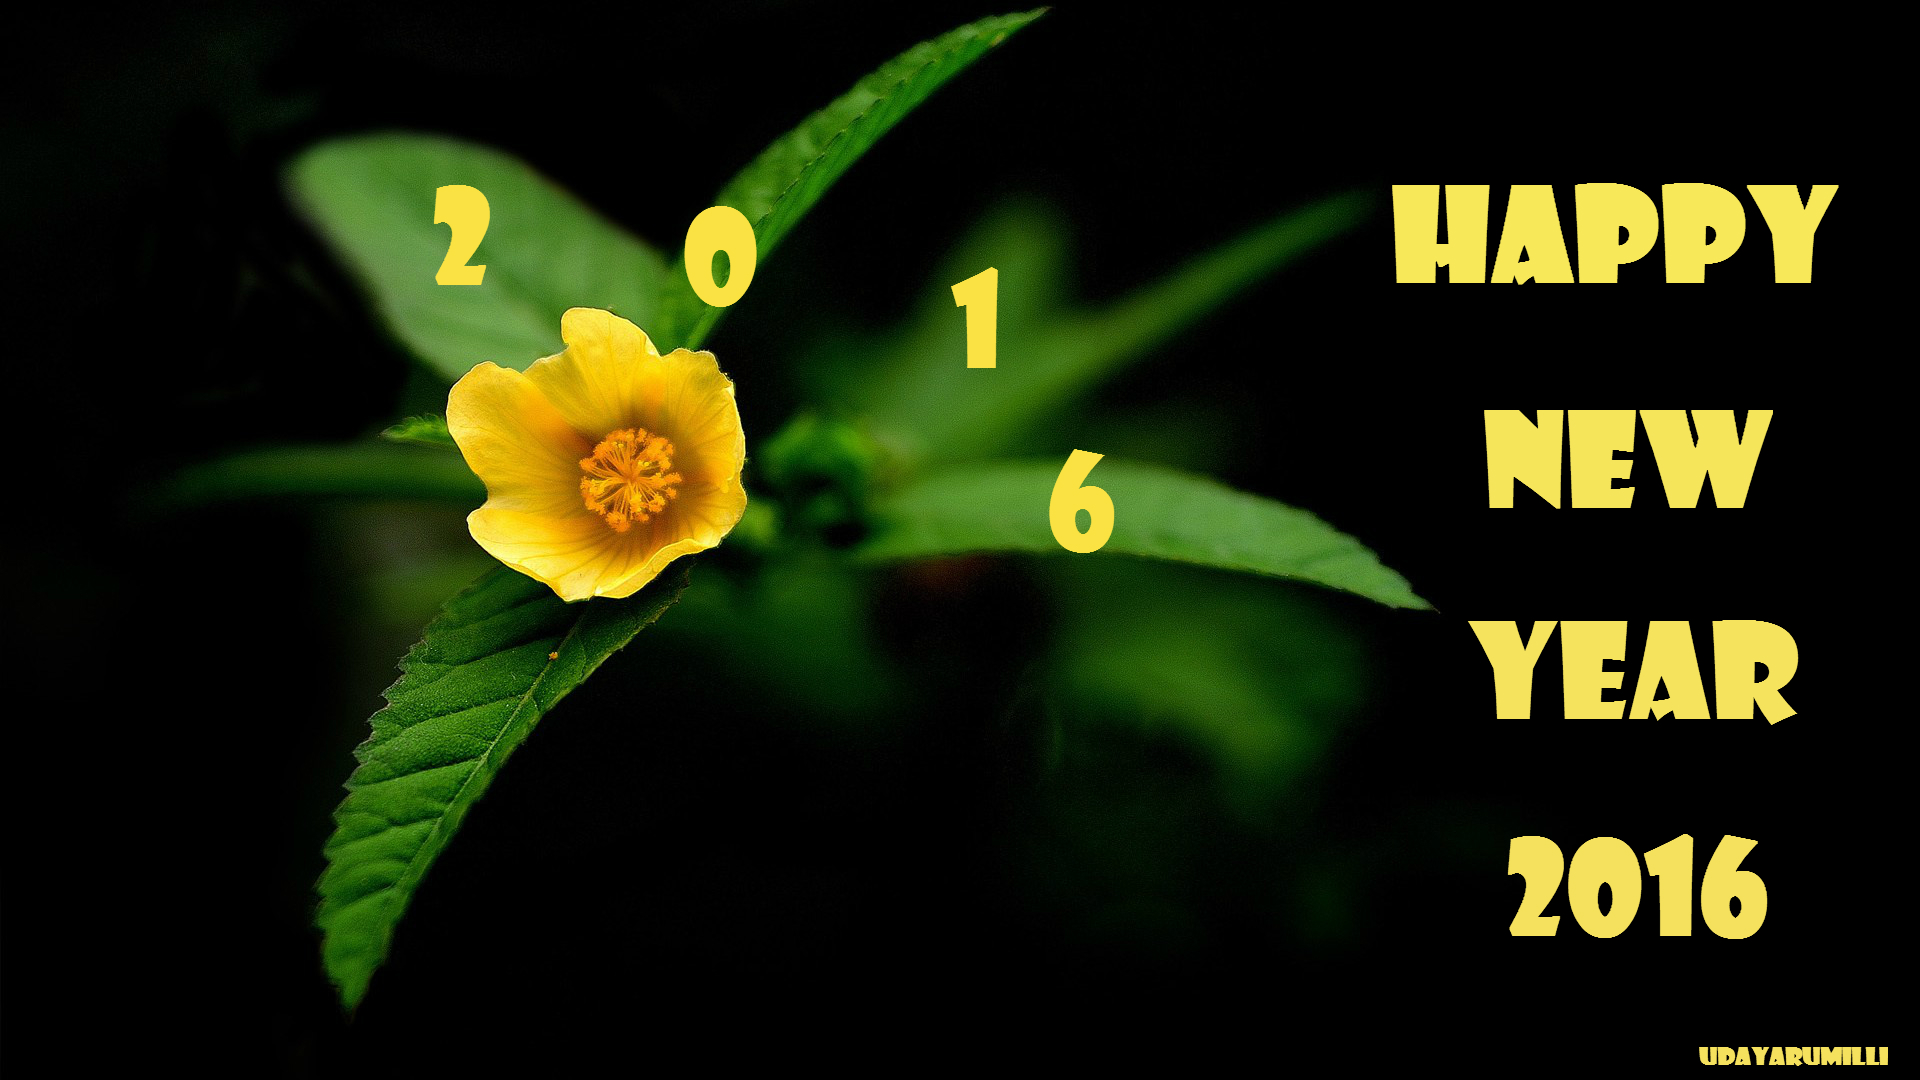 Happy 24 Happy New Year 2016 Wishes And Images